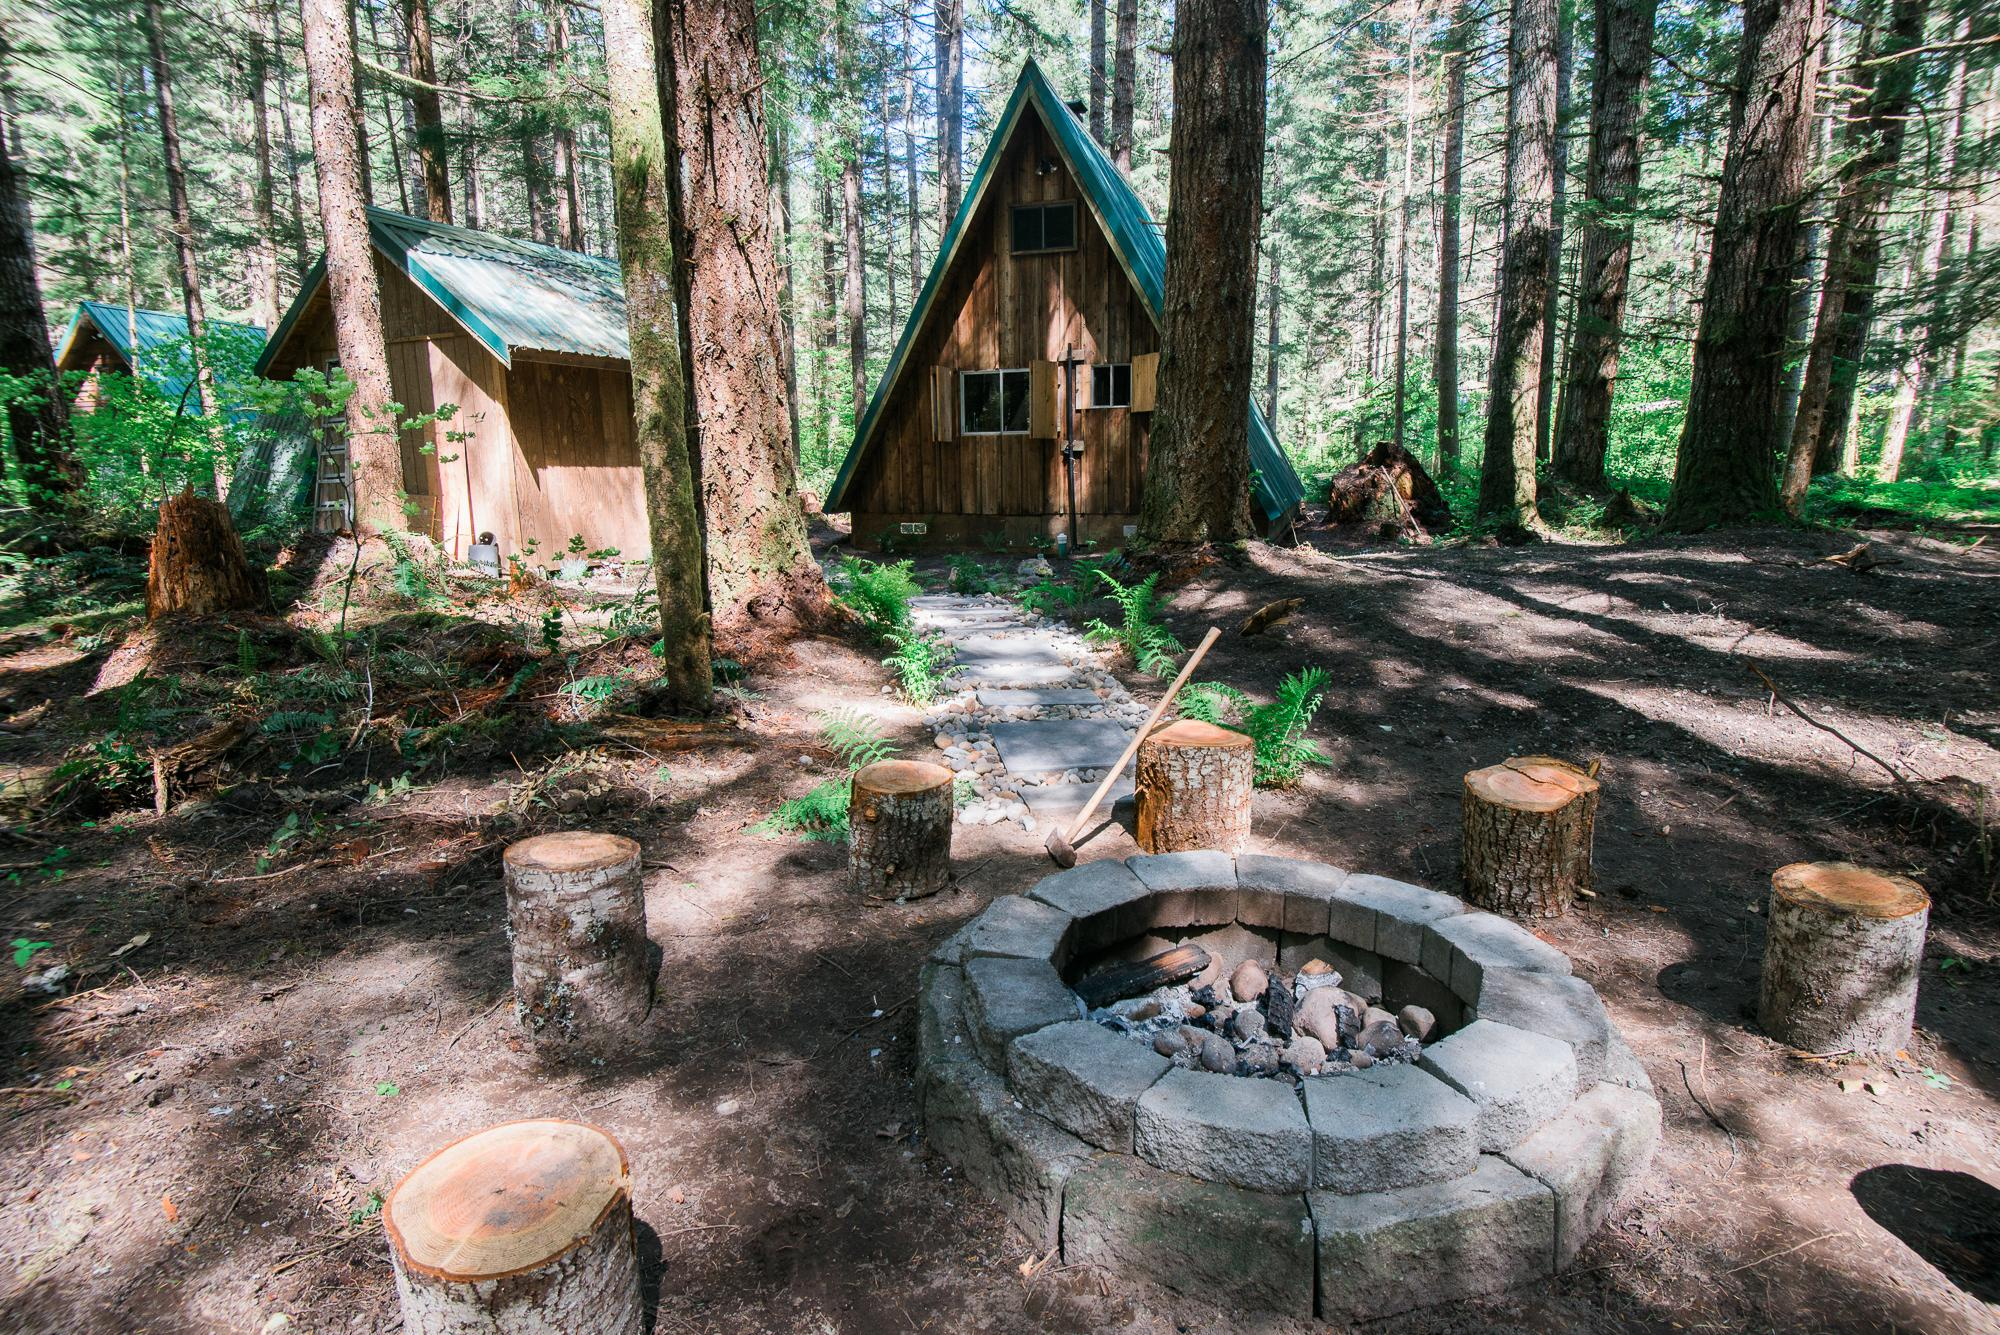 "This rental in Ashford, Washington is close to Mount Rainier and is as cute as can be! It's a quaint 700 square foot cabin that is perfect for a weekend getaway for two (or one if you are looking for a quiet weekend by yourself - WE GET IT.) Nicknamed ""Hebe's Hideout"" the cabin has been recently remodeled and is a short stroll away from the Nisqually River. Even though you are in the woods however there is wifi in the cabin and a new flat screen TV and DVD player. Hebe's Hideout is one bedroom, one bath and is $167 per night. You can book Hebe's Hideout through VRBO! (Image courtesy of Amelia Chavez / VRBO)."